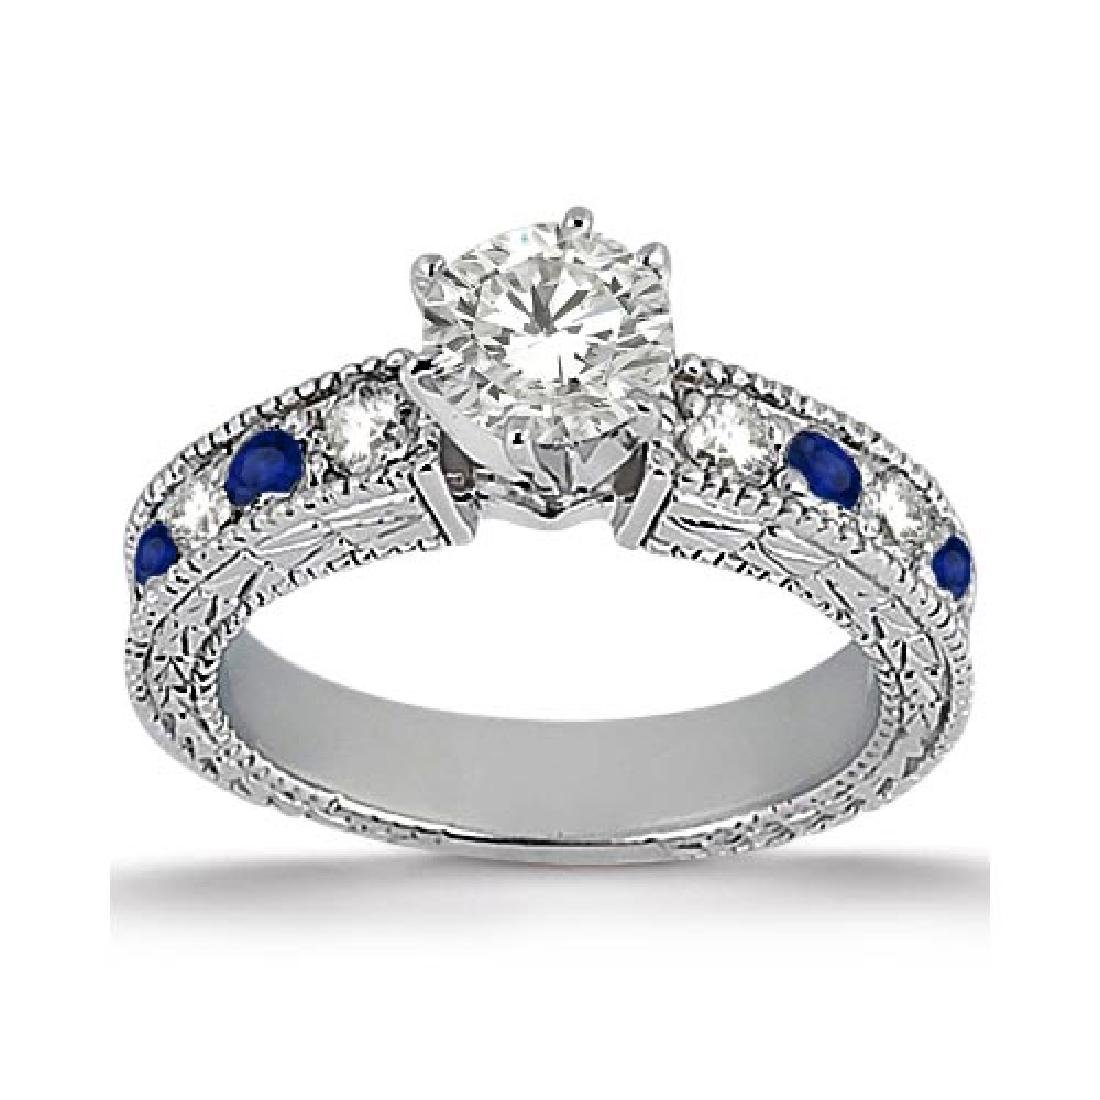 Antique Diamond and Blue Sapphire Engagement Ring 14k W